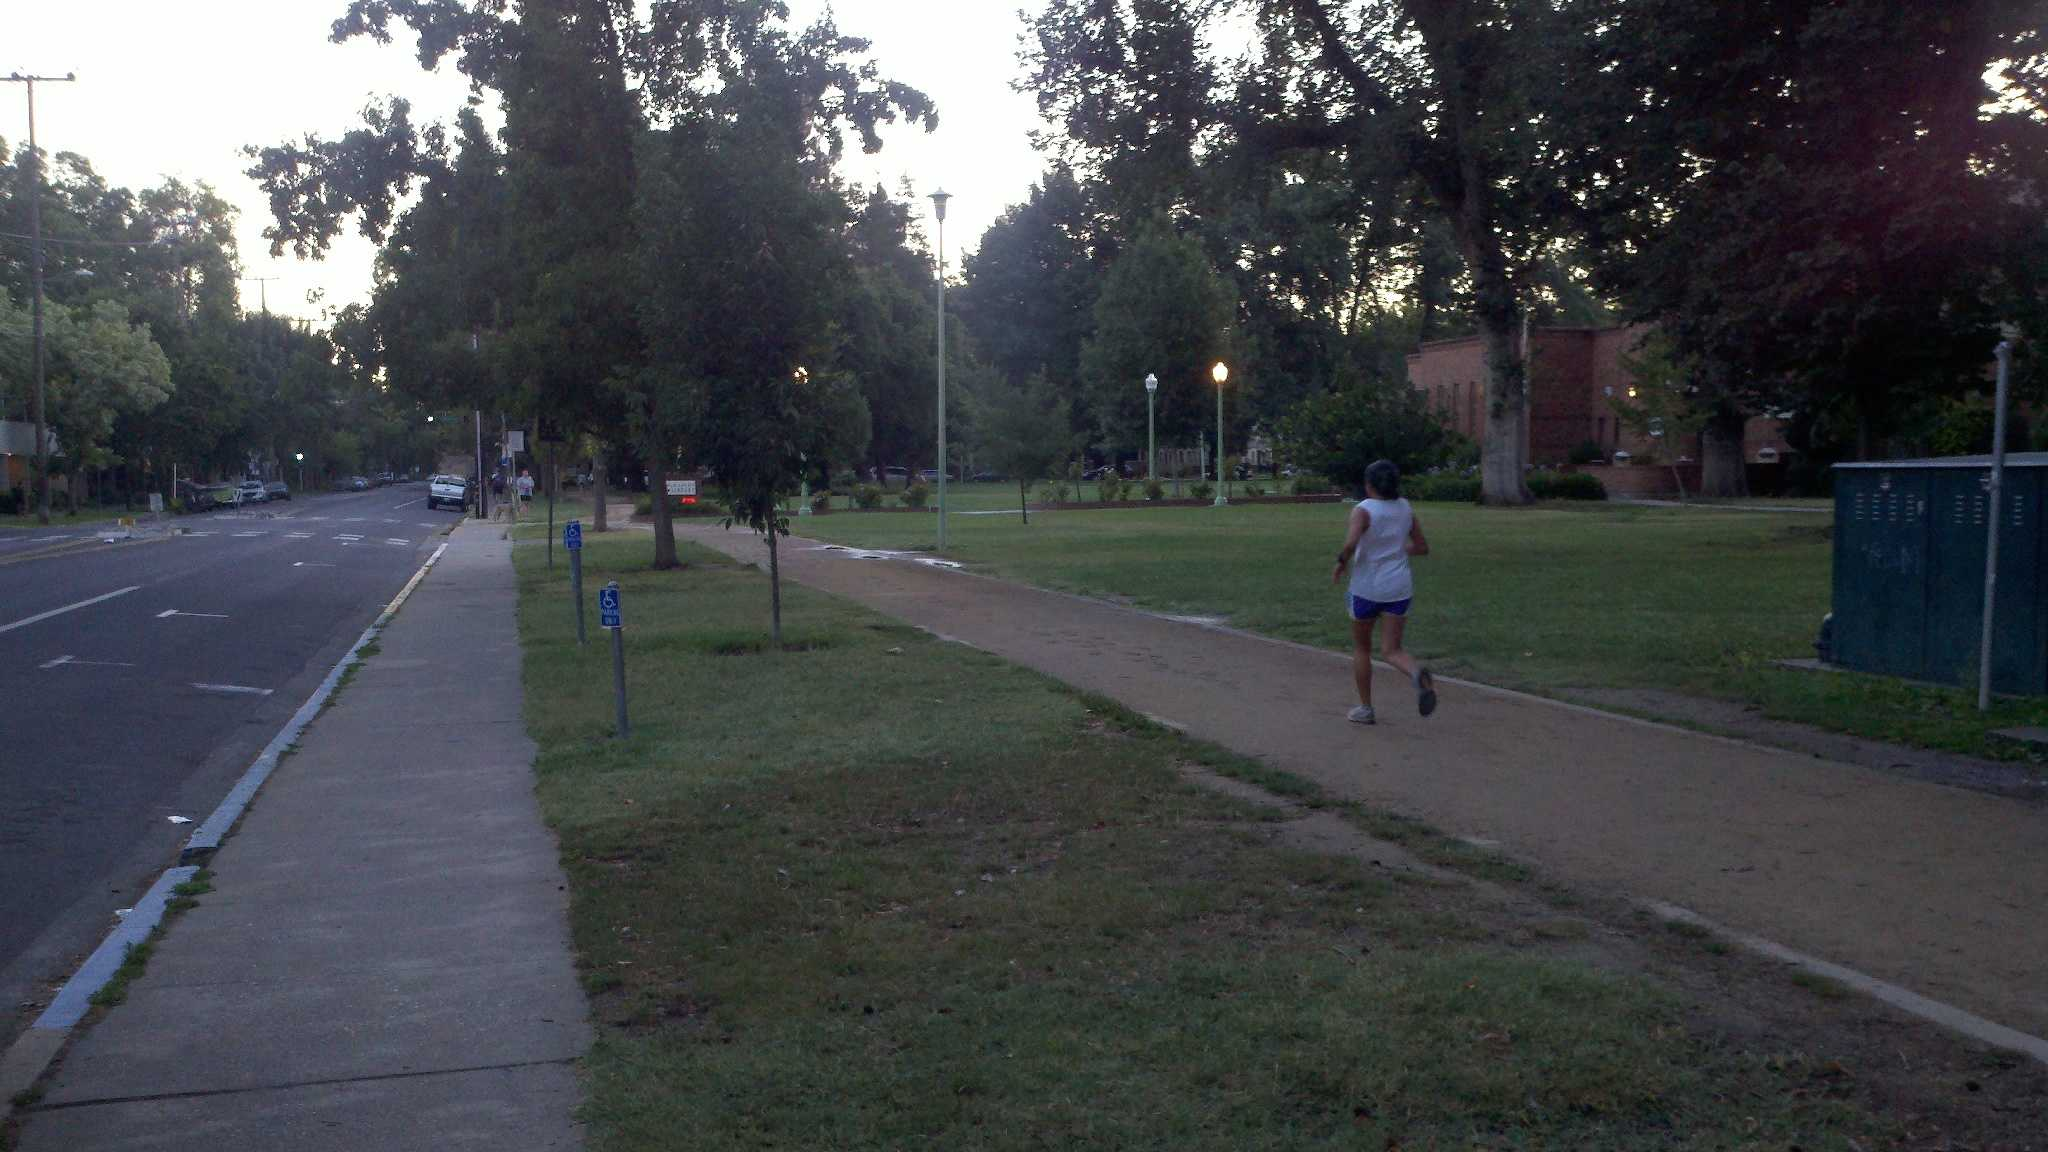 Some runners were out earlier than usual Wednesday morning, before the hot temperatures crept in (July 11, 2012).